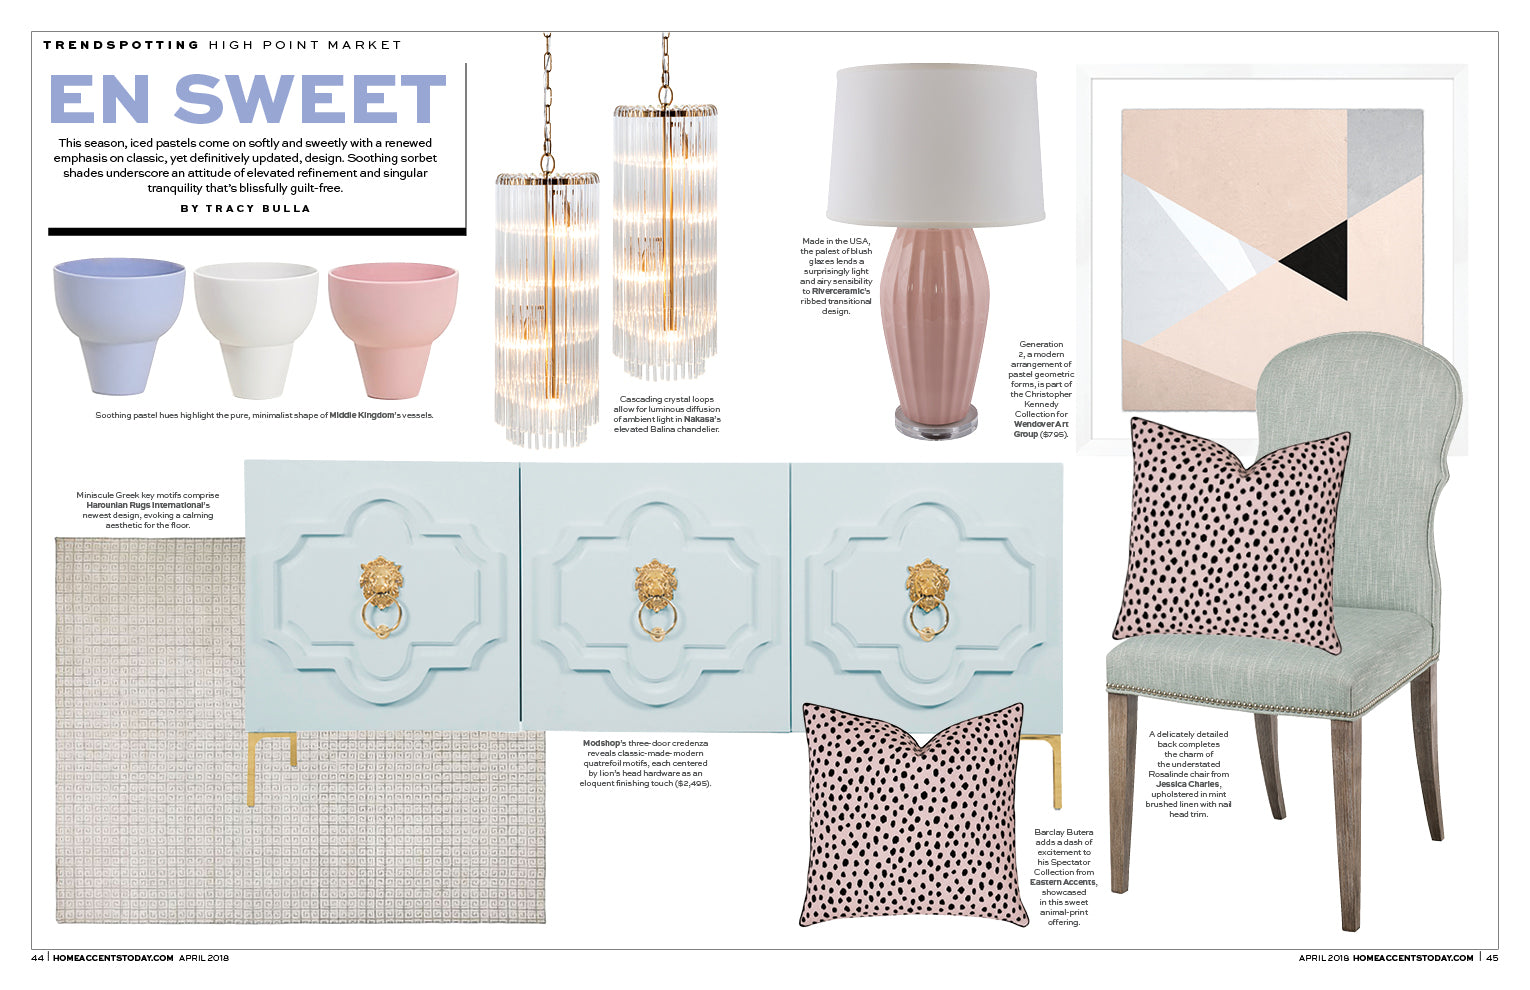 home accents today magazine article trendspotting features modshop's marrakesh three door credenza with brass lion head knockers